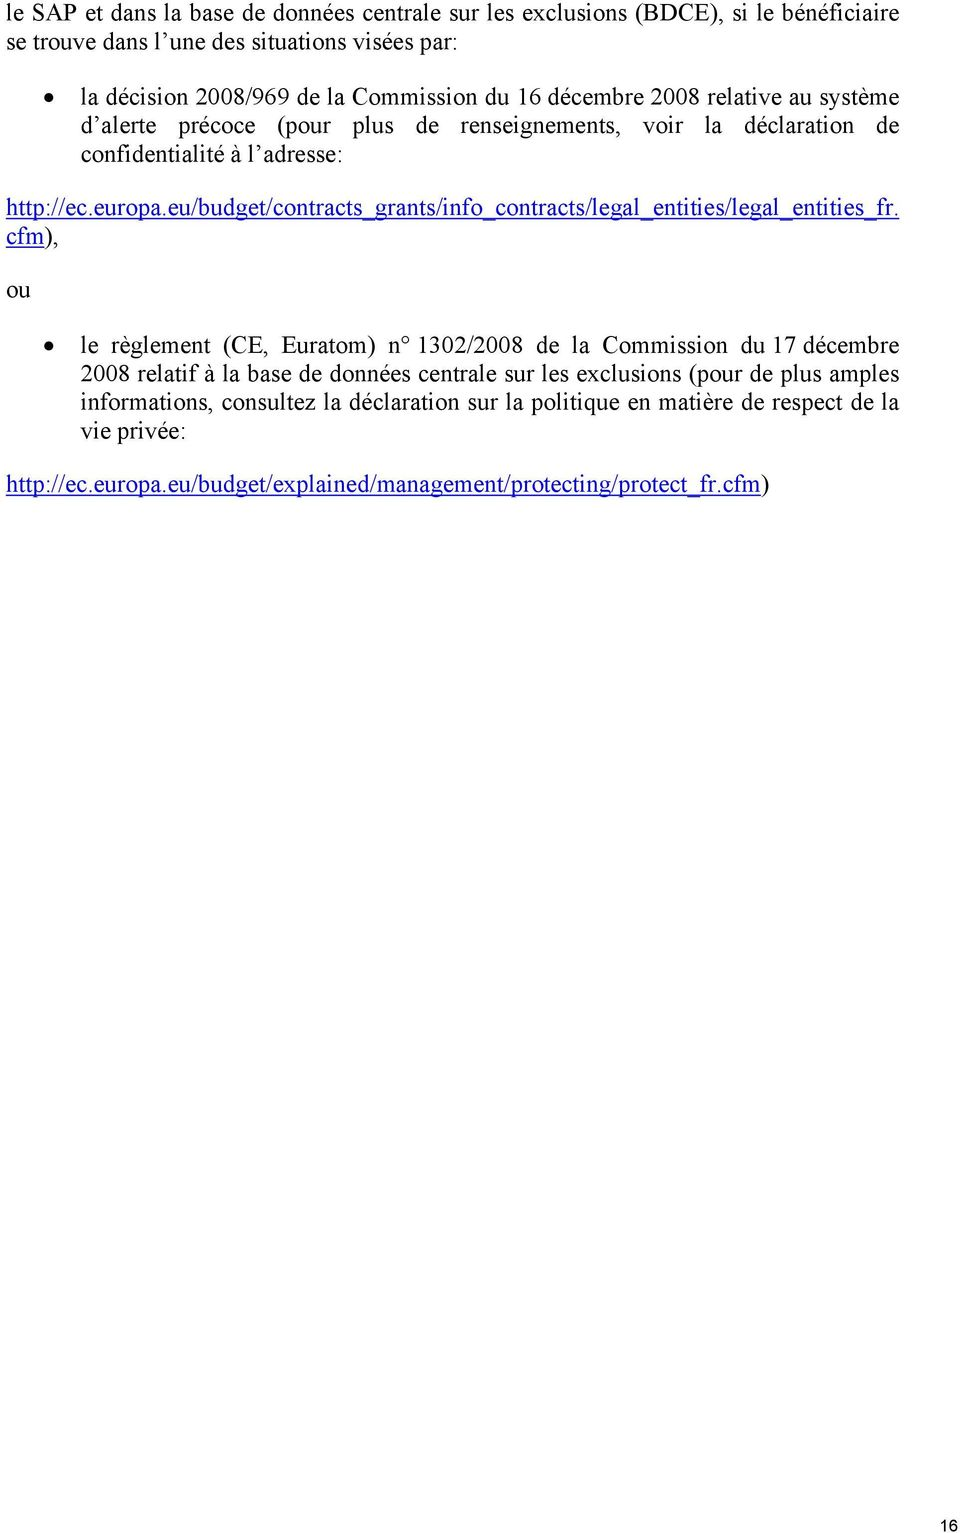 eu/budget/contracts_grants/info_contracts/legal_entities/legal_entities_fr.